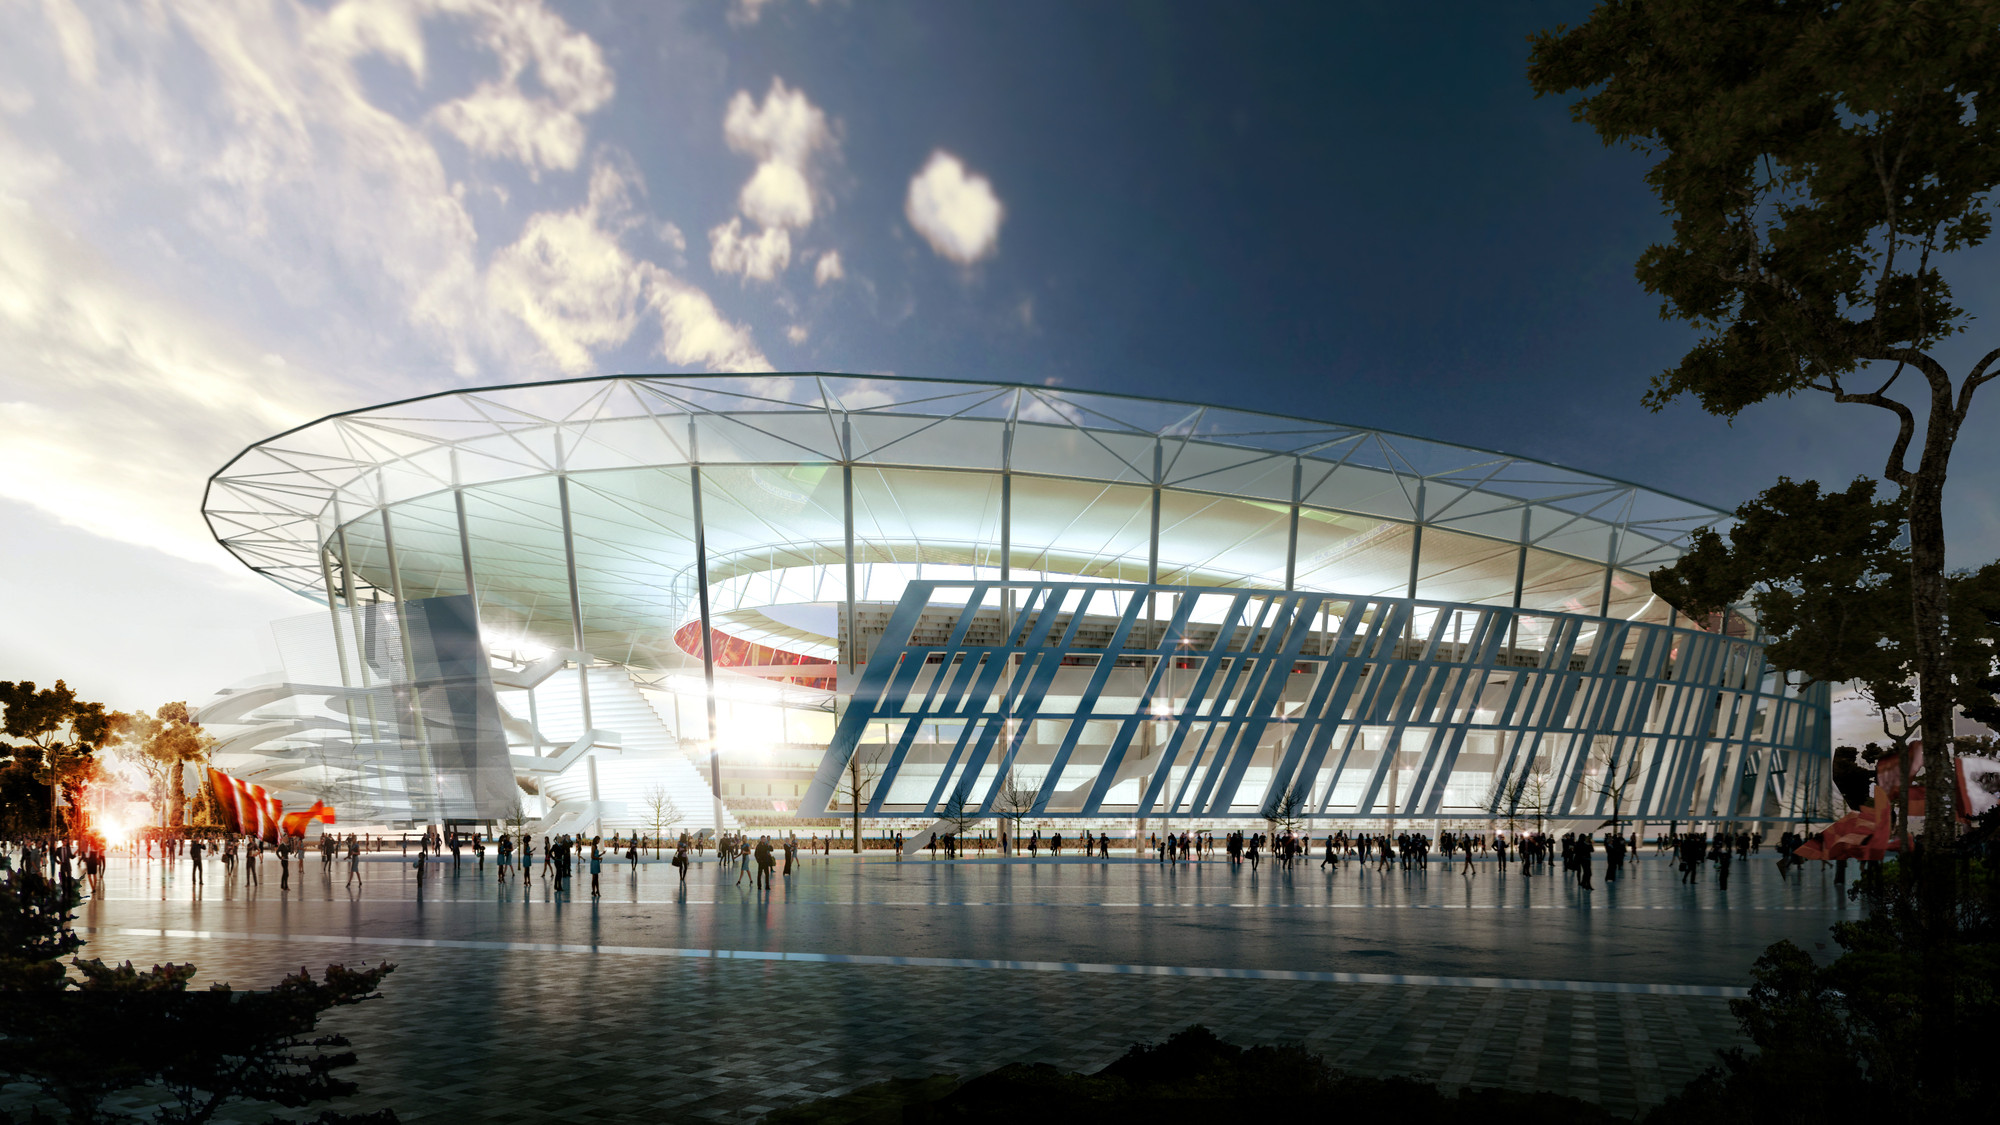 Woods Bagot Presenta Estadio Inspirado en el Coliseo para AS Roma, Courtesy of Woods Bagot